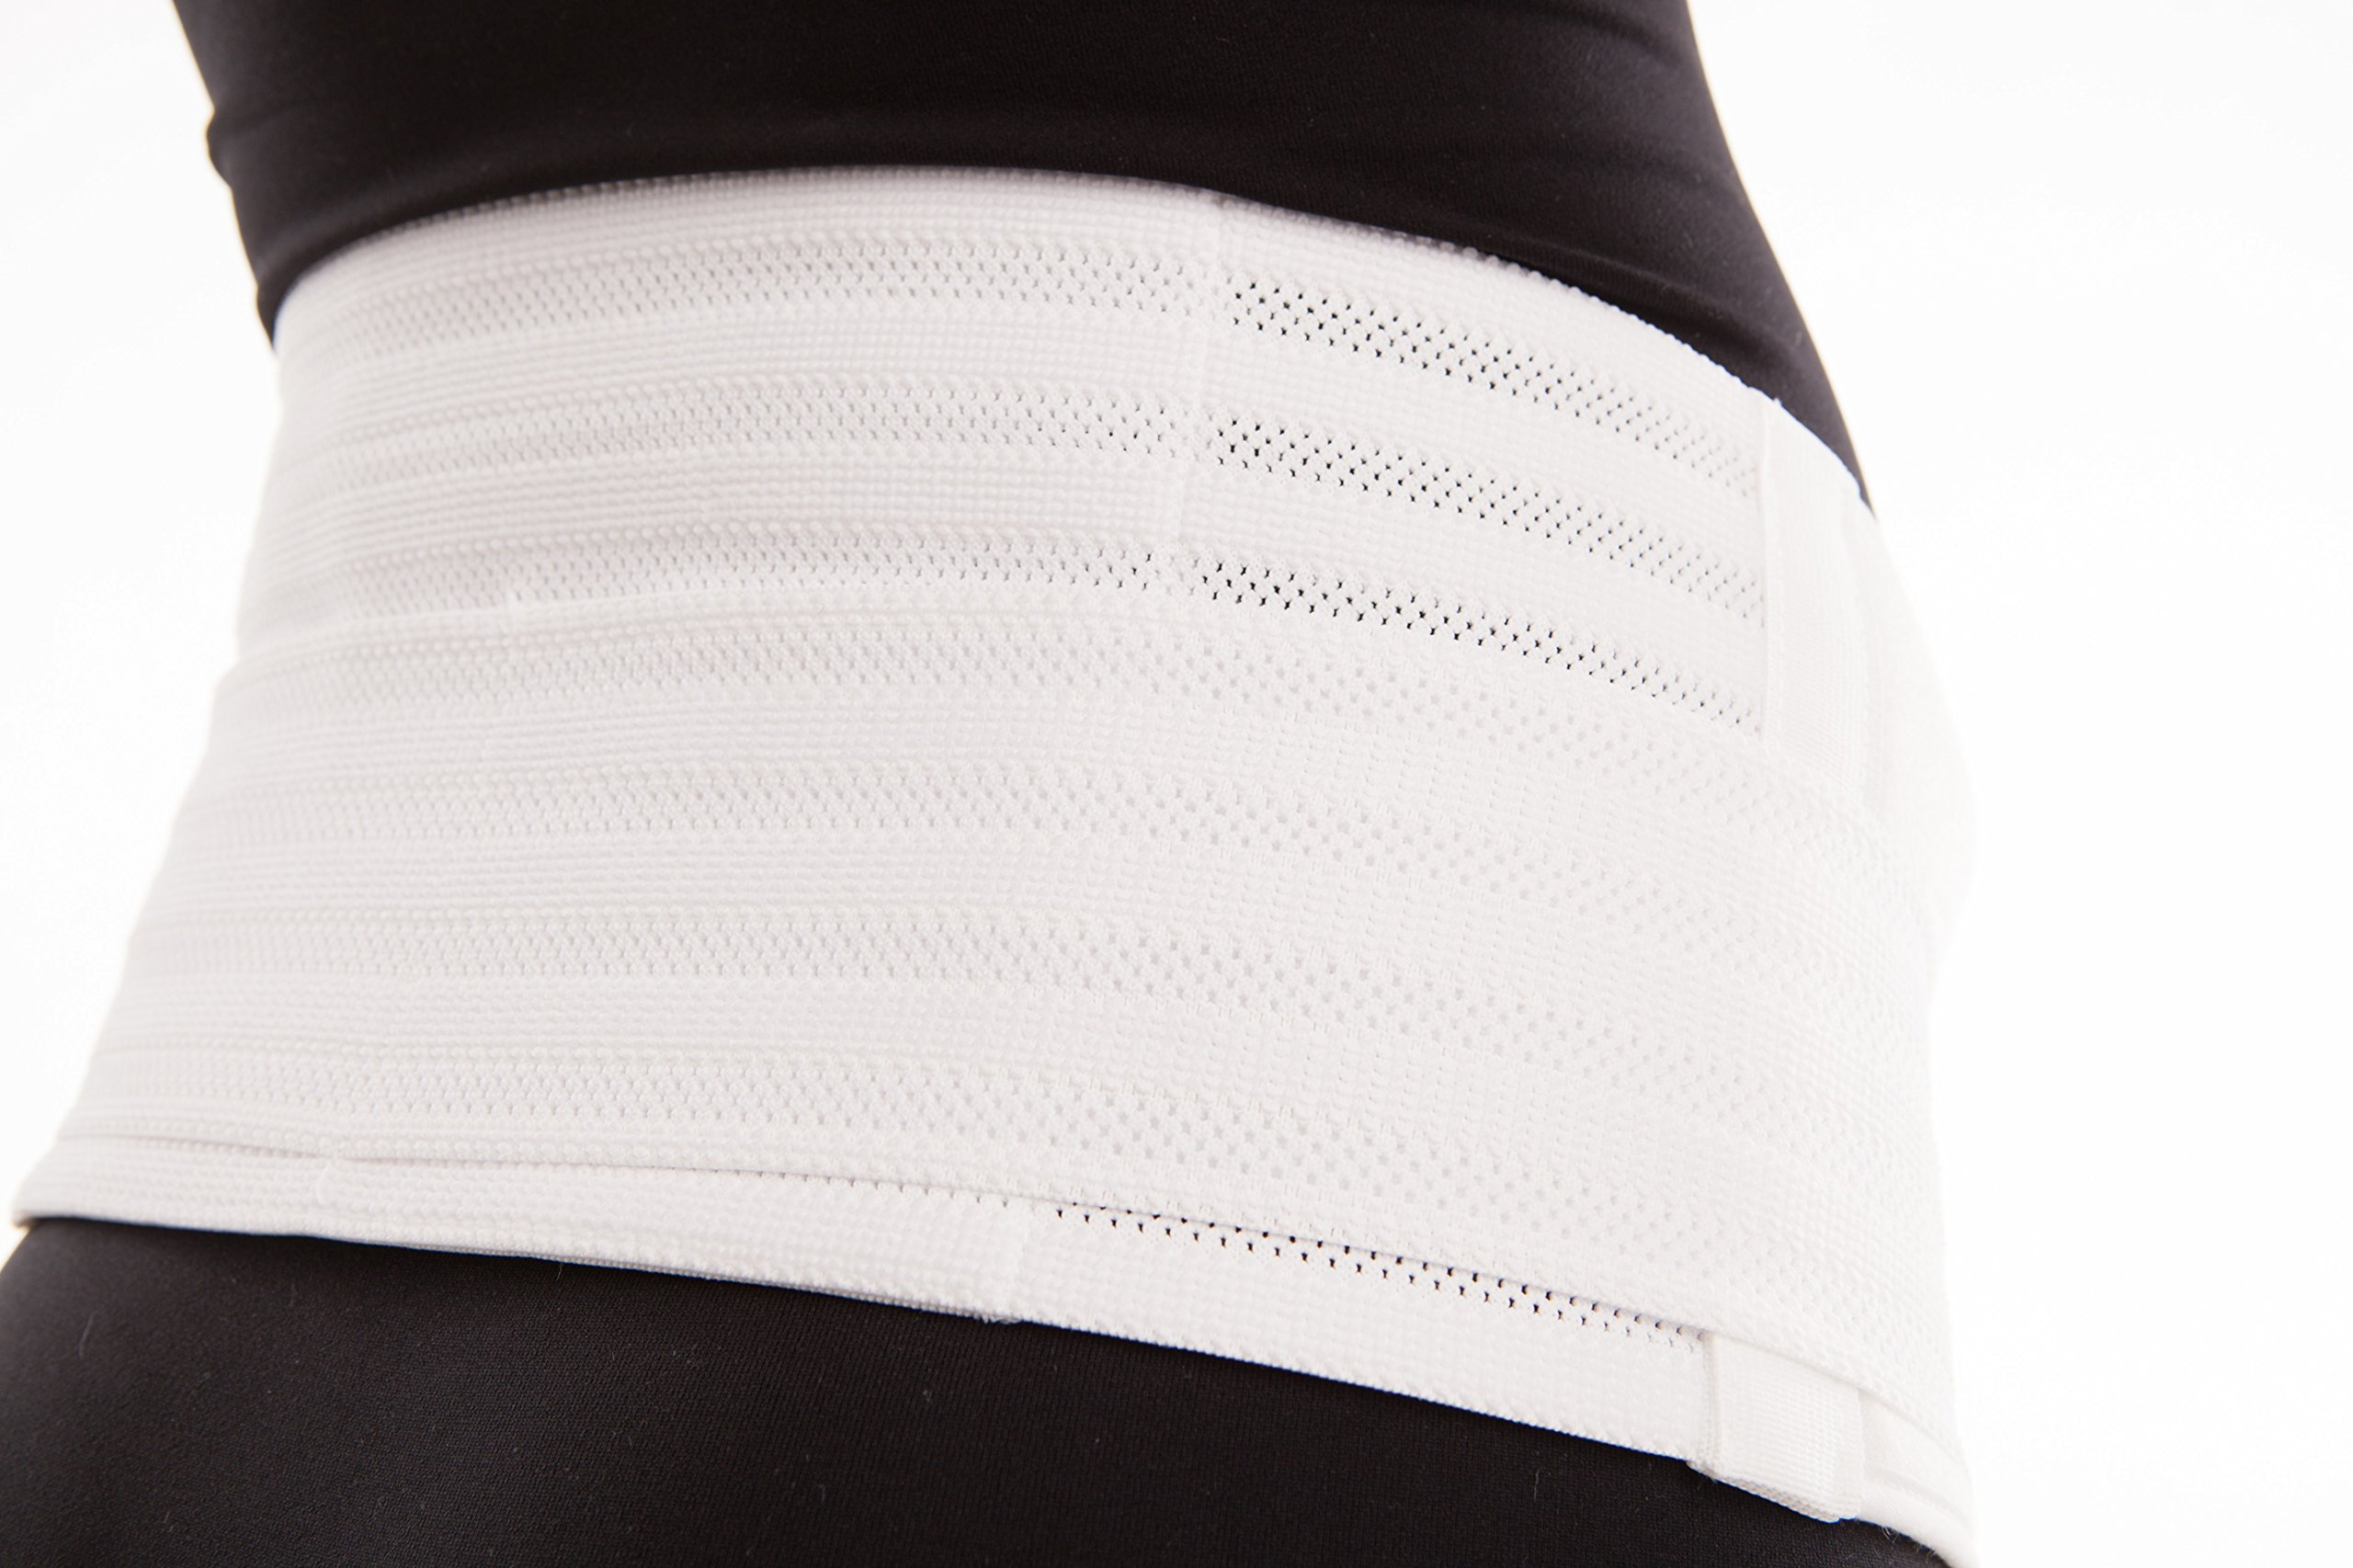 ddf495ed885c5 GABRIALLA MS-96i Breathable Cotton Lined Maternity Belt   Back Support   Made in USA